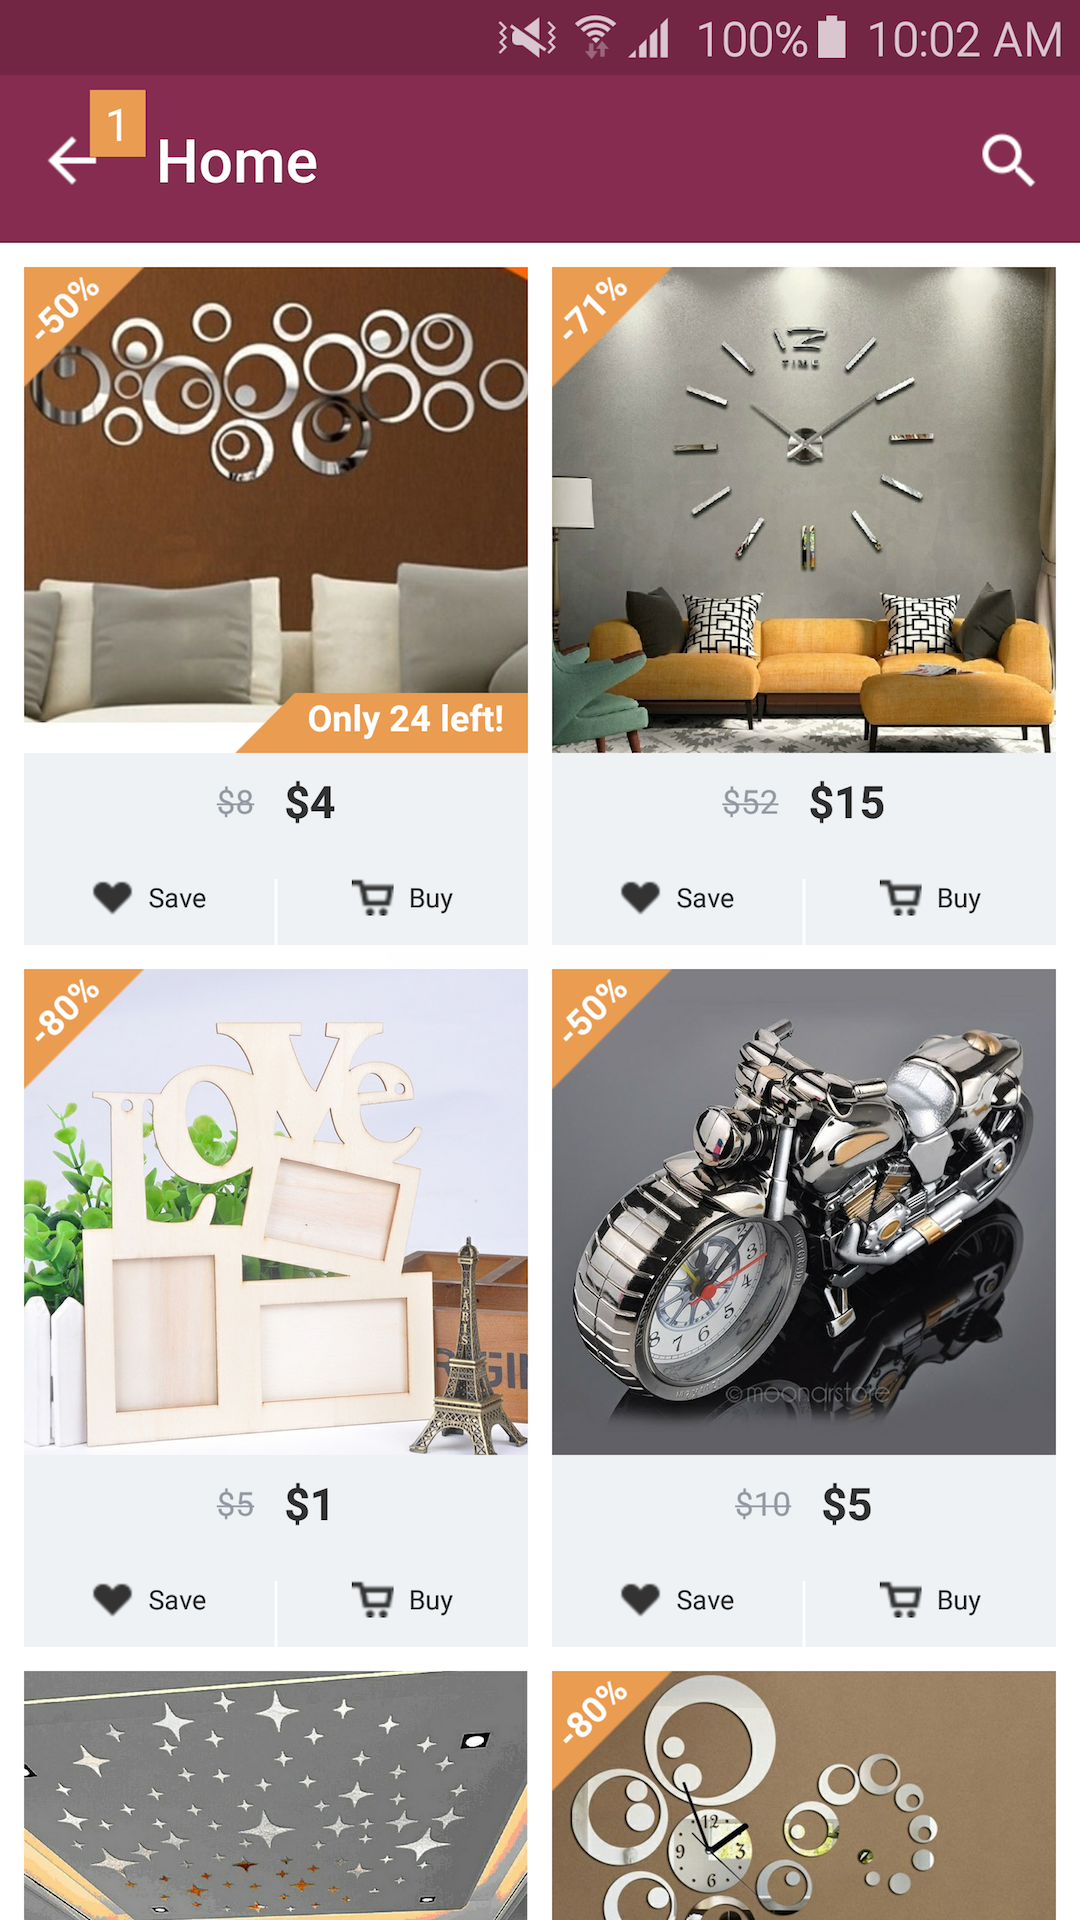 amazoncom home design decor shopping appstore for android - Home Design And Decor Shopping